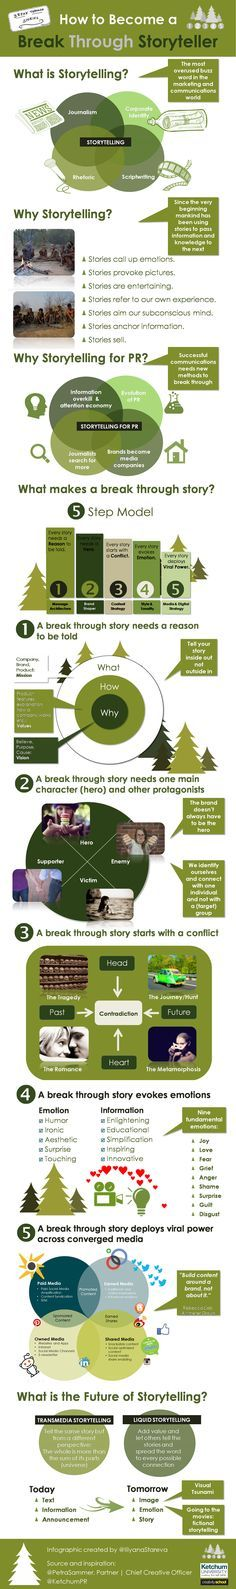 How to Become a Break Through Storyteller #contentmarketing #infographic